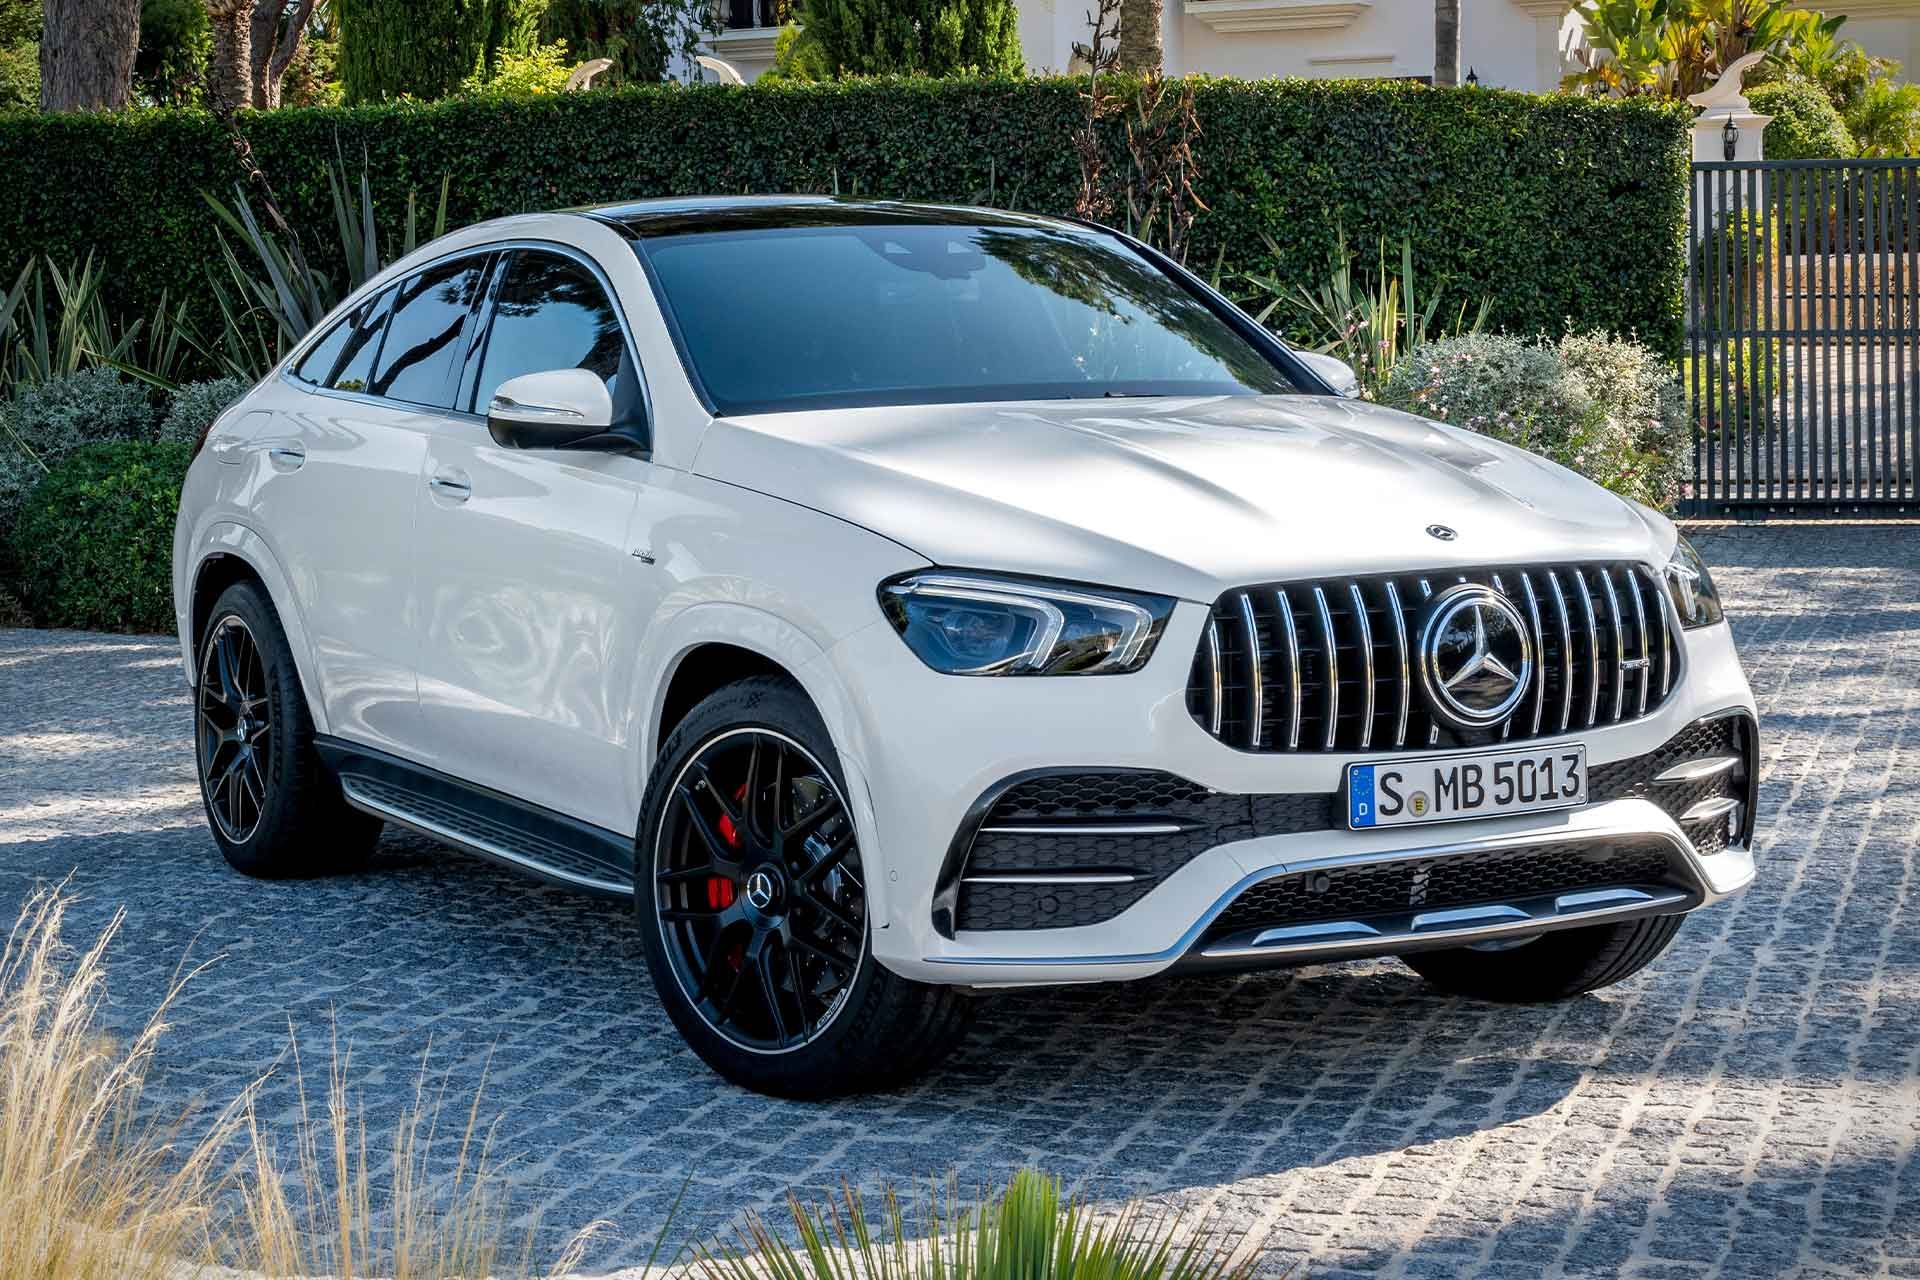 2021 Mercedes-AMG GLE 53 Coupe | Mercedes benz gle coupe, Mercedes ...